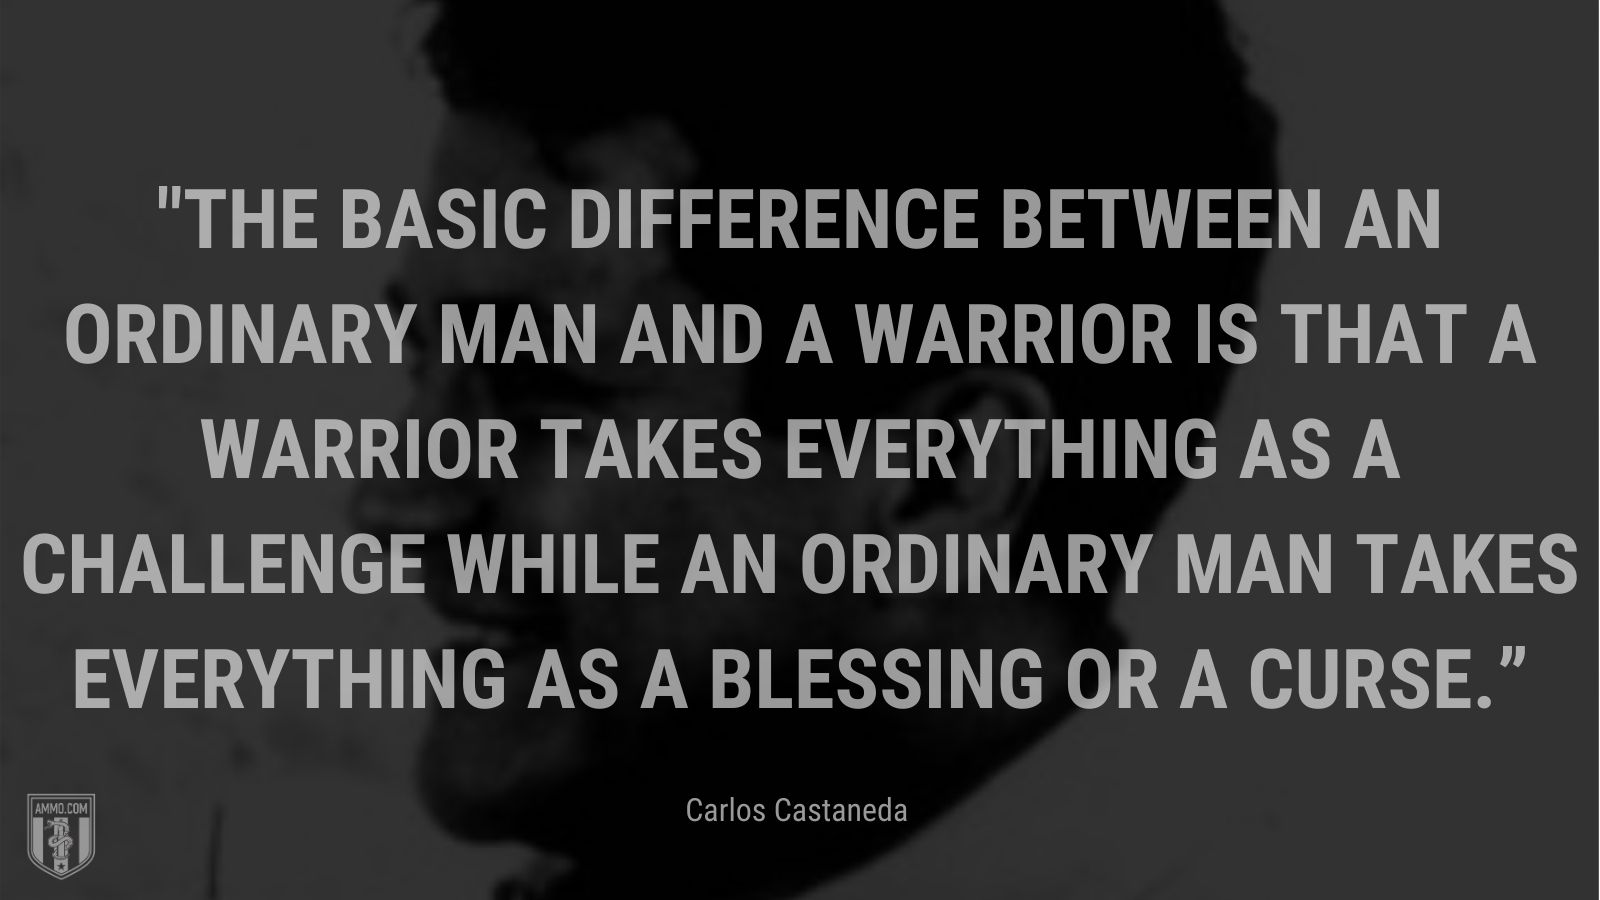 """""""The basic difference between an ordinary man and a warrior is that a warrior takes everything as a challenge while an ordinary man takes everything as a blessing or a curse."""" - Carlos Castaneda"""